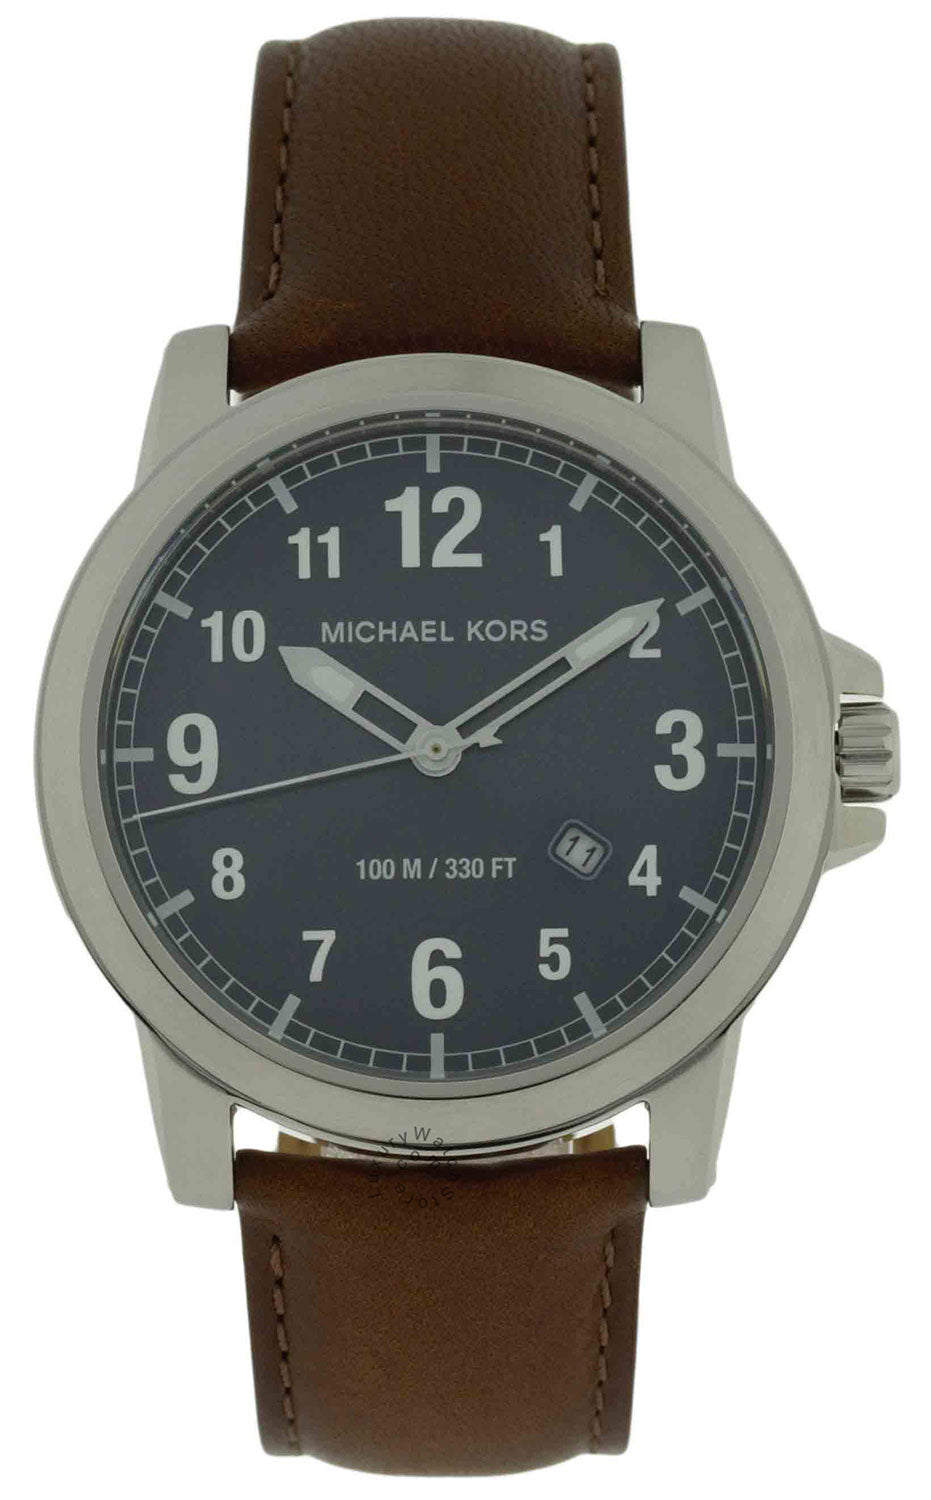 9d78cc35fb78 Michael Kors Paxton Blue Dial Brown Leather Strap Men Watch MK8501 –  LUXURYWATCHSTORE